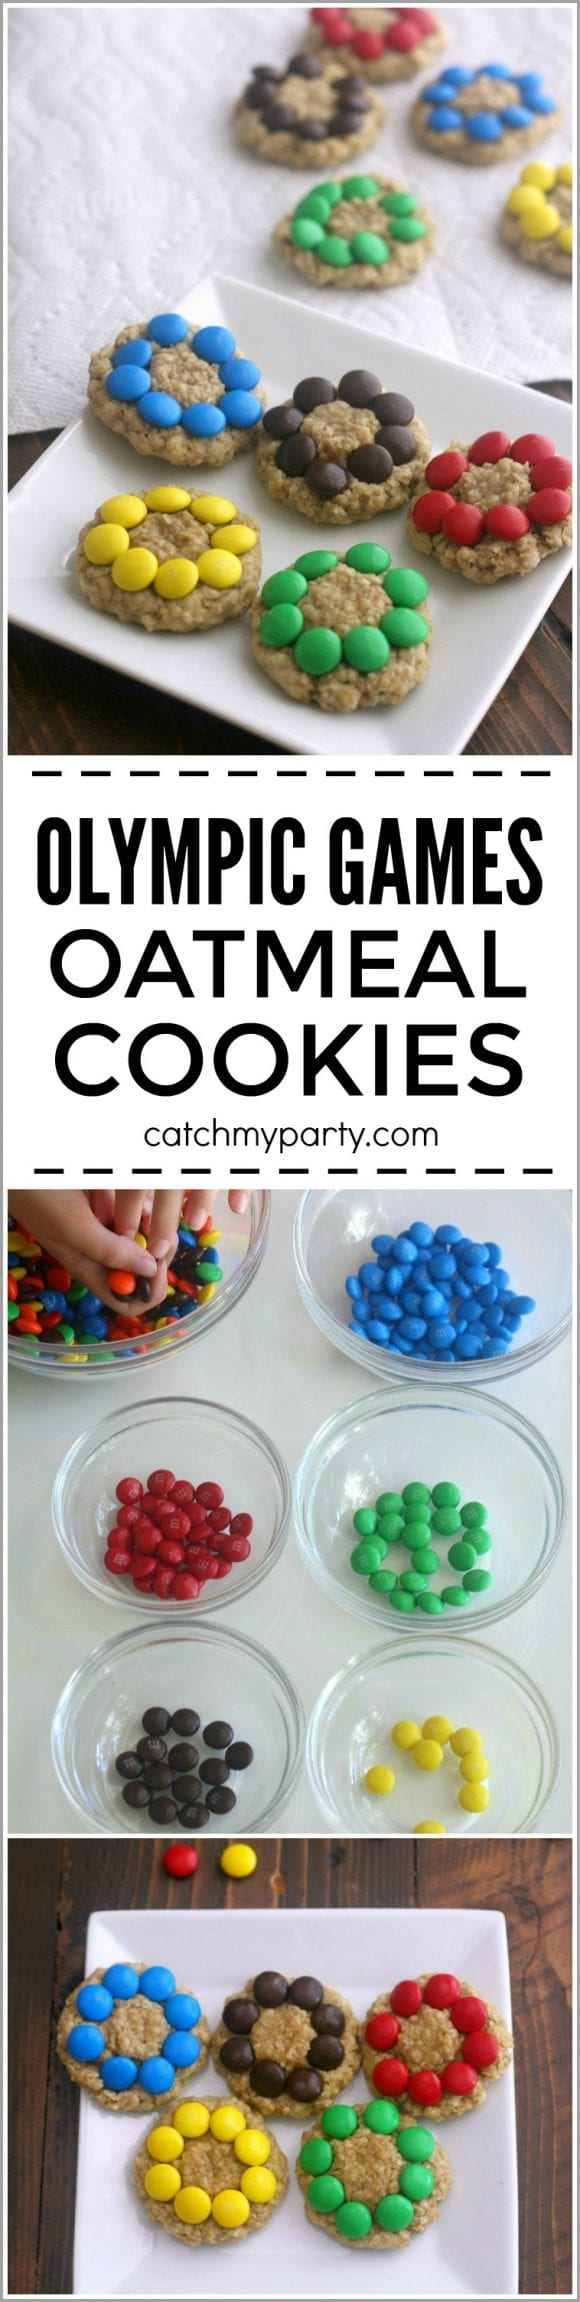 Olympic Games Oatmeal M&M Cookies | CatchMyParty.com